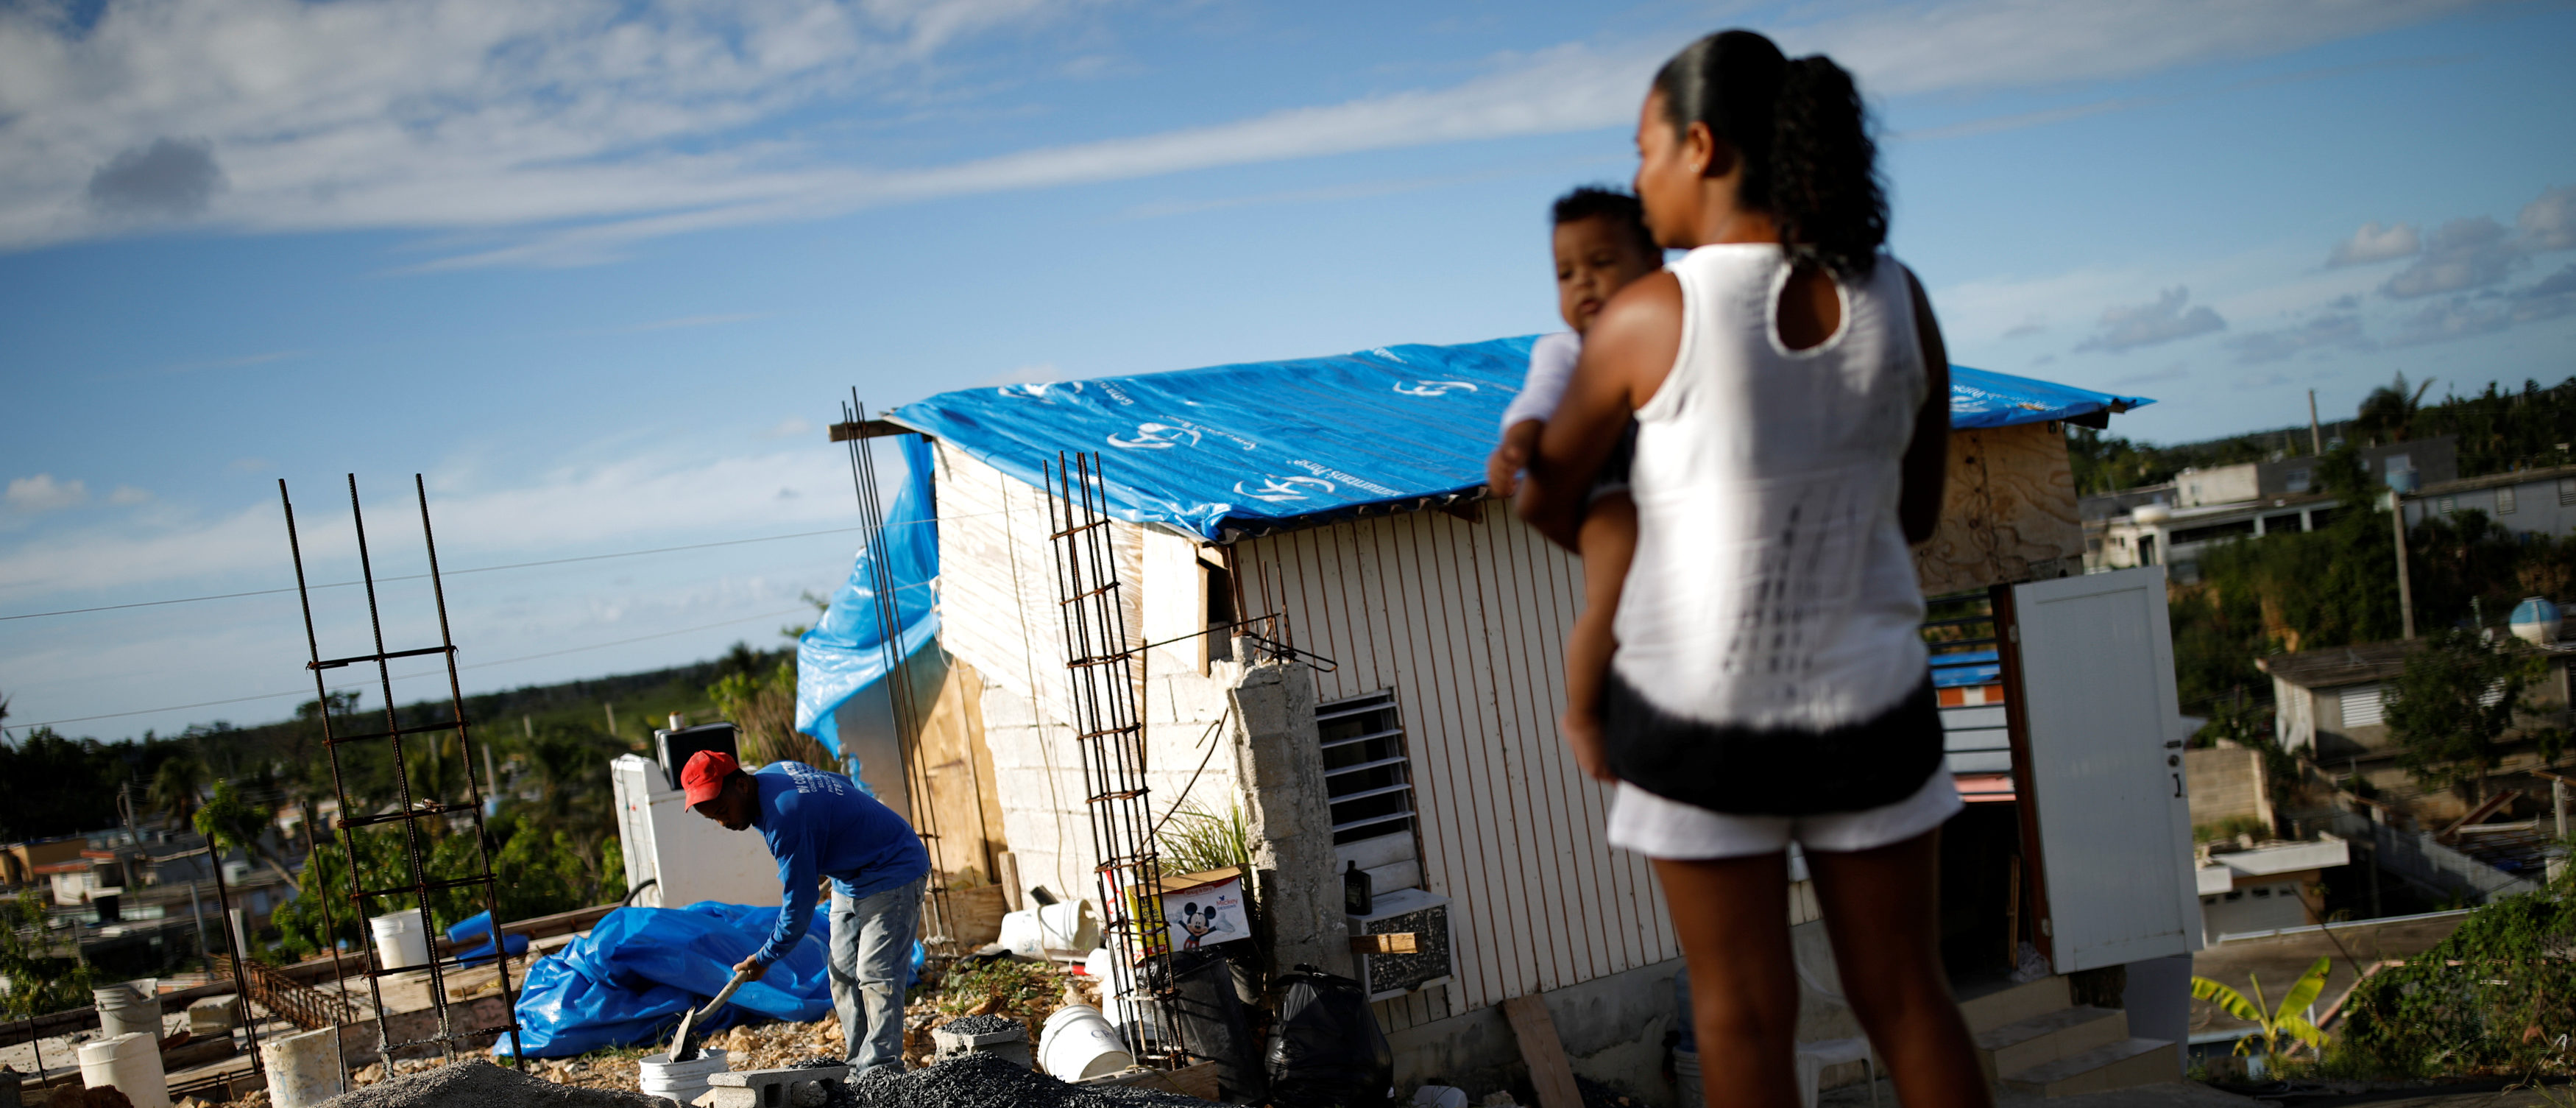 """Samuel Vasquez rebuilds his house, which was partially destroyed by Hurricane Maria, while his wife Ysamar Figueroa looks on, whilst carrying their son Saniel, at the squatter community of Villa Hugo in Canovanas, Puerto Rico, December 11, 2017. Villa Hugo is a settlement initially formed by people whose houses were damaged or destroyed by Hurricane Hugo in 1989. REUTERS/Carlos Garcia Rawlins SEARCH """"RAWLINS HUGO"""" FOR THIS STORY. SEARCH """"WIDER IMAGE"""" FOR ALL STORIES. - RC110A1126A0"""